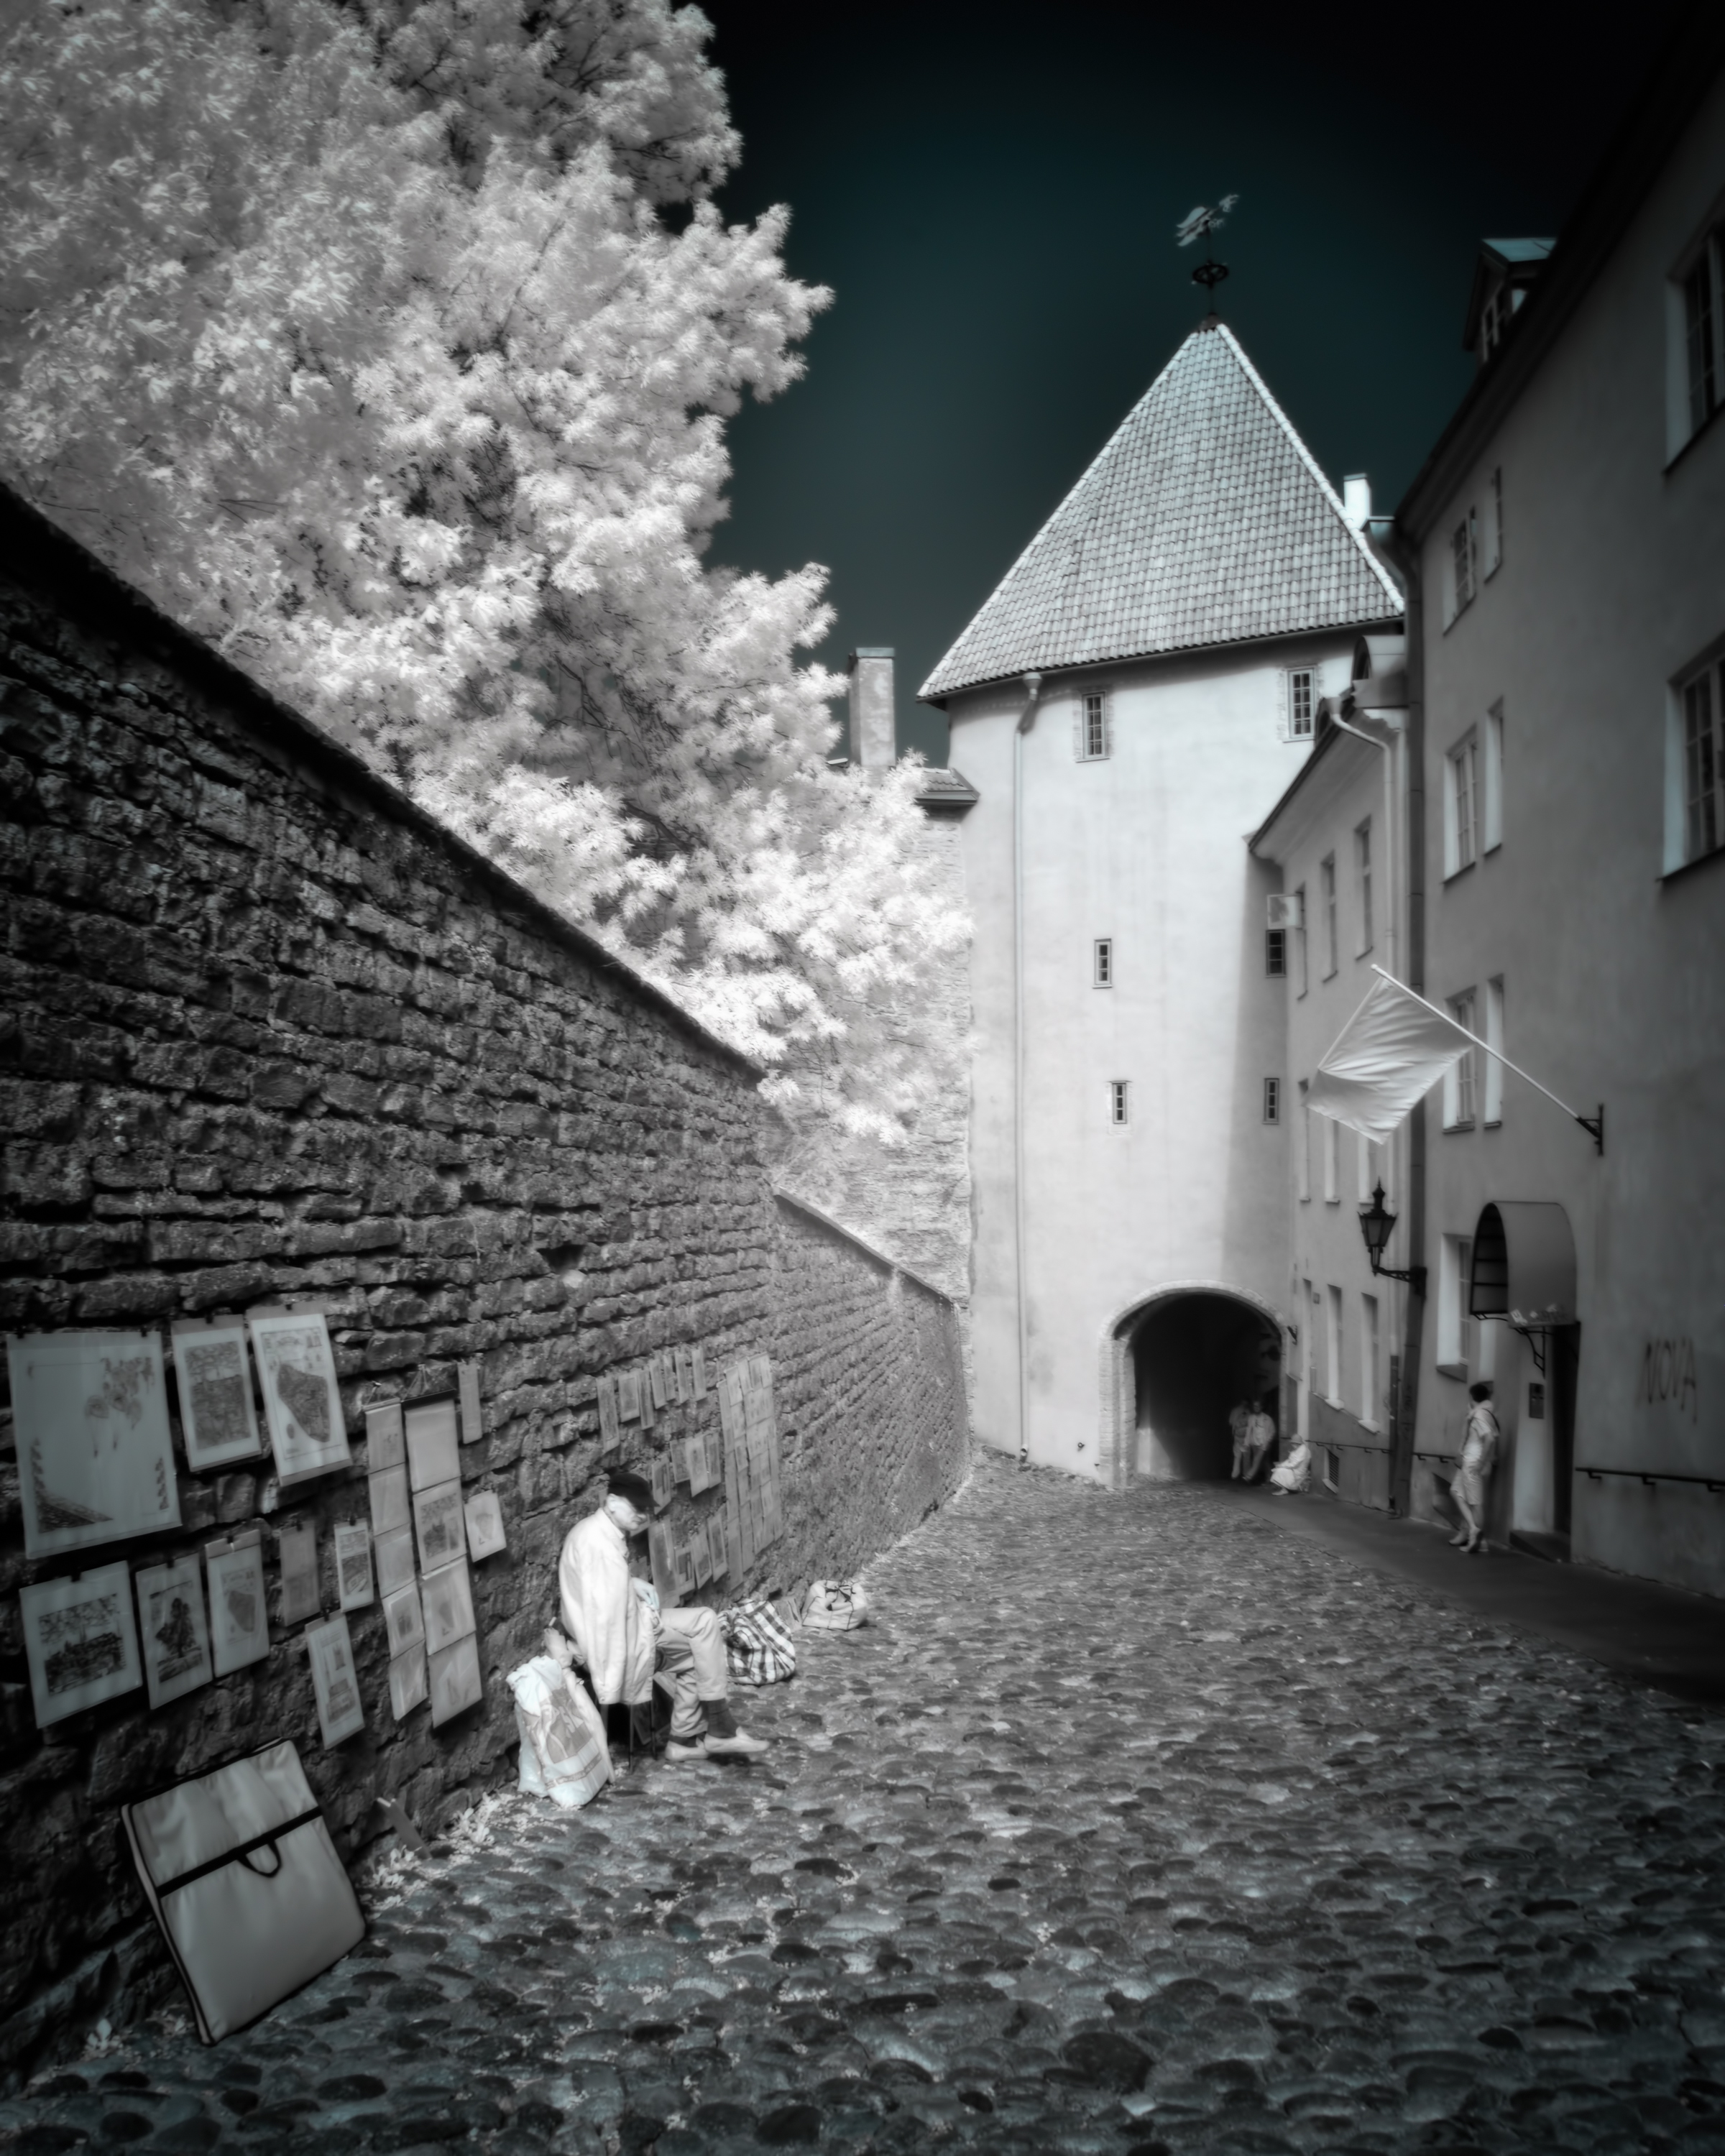 Art work for sale, a man sits with his art along a walkway in Tallinn Estoina.